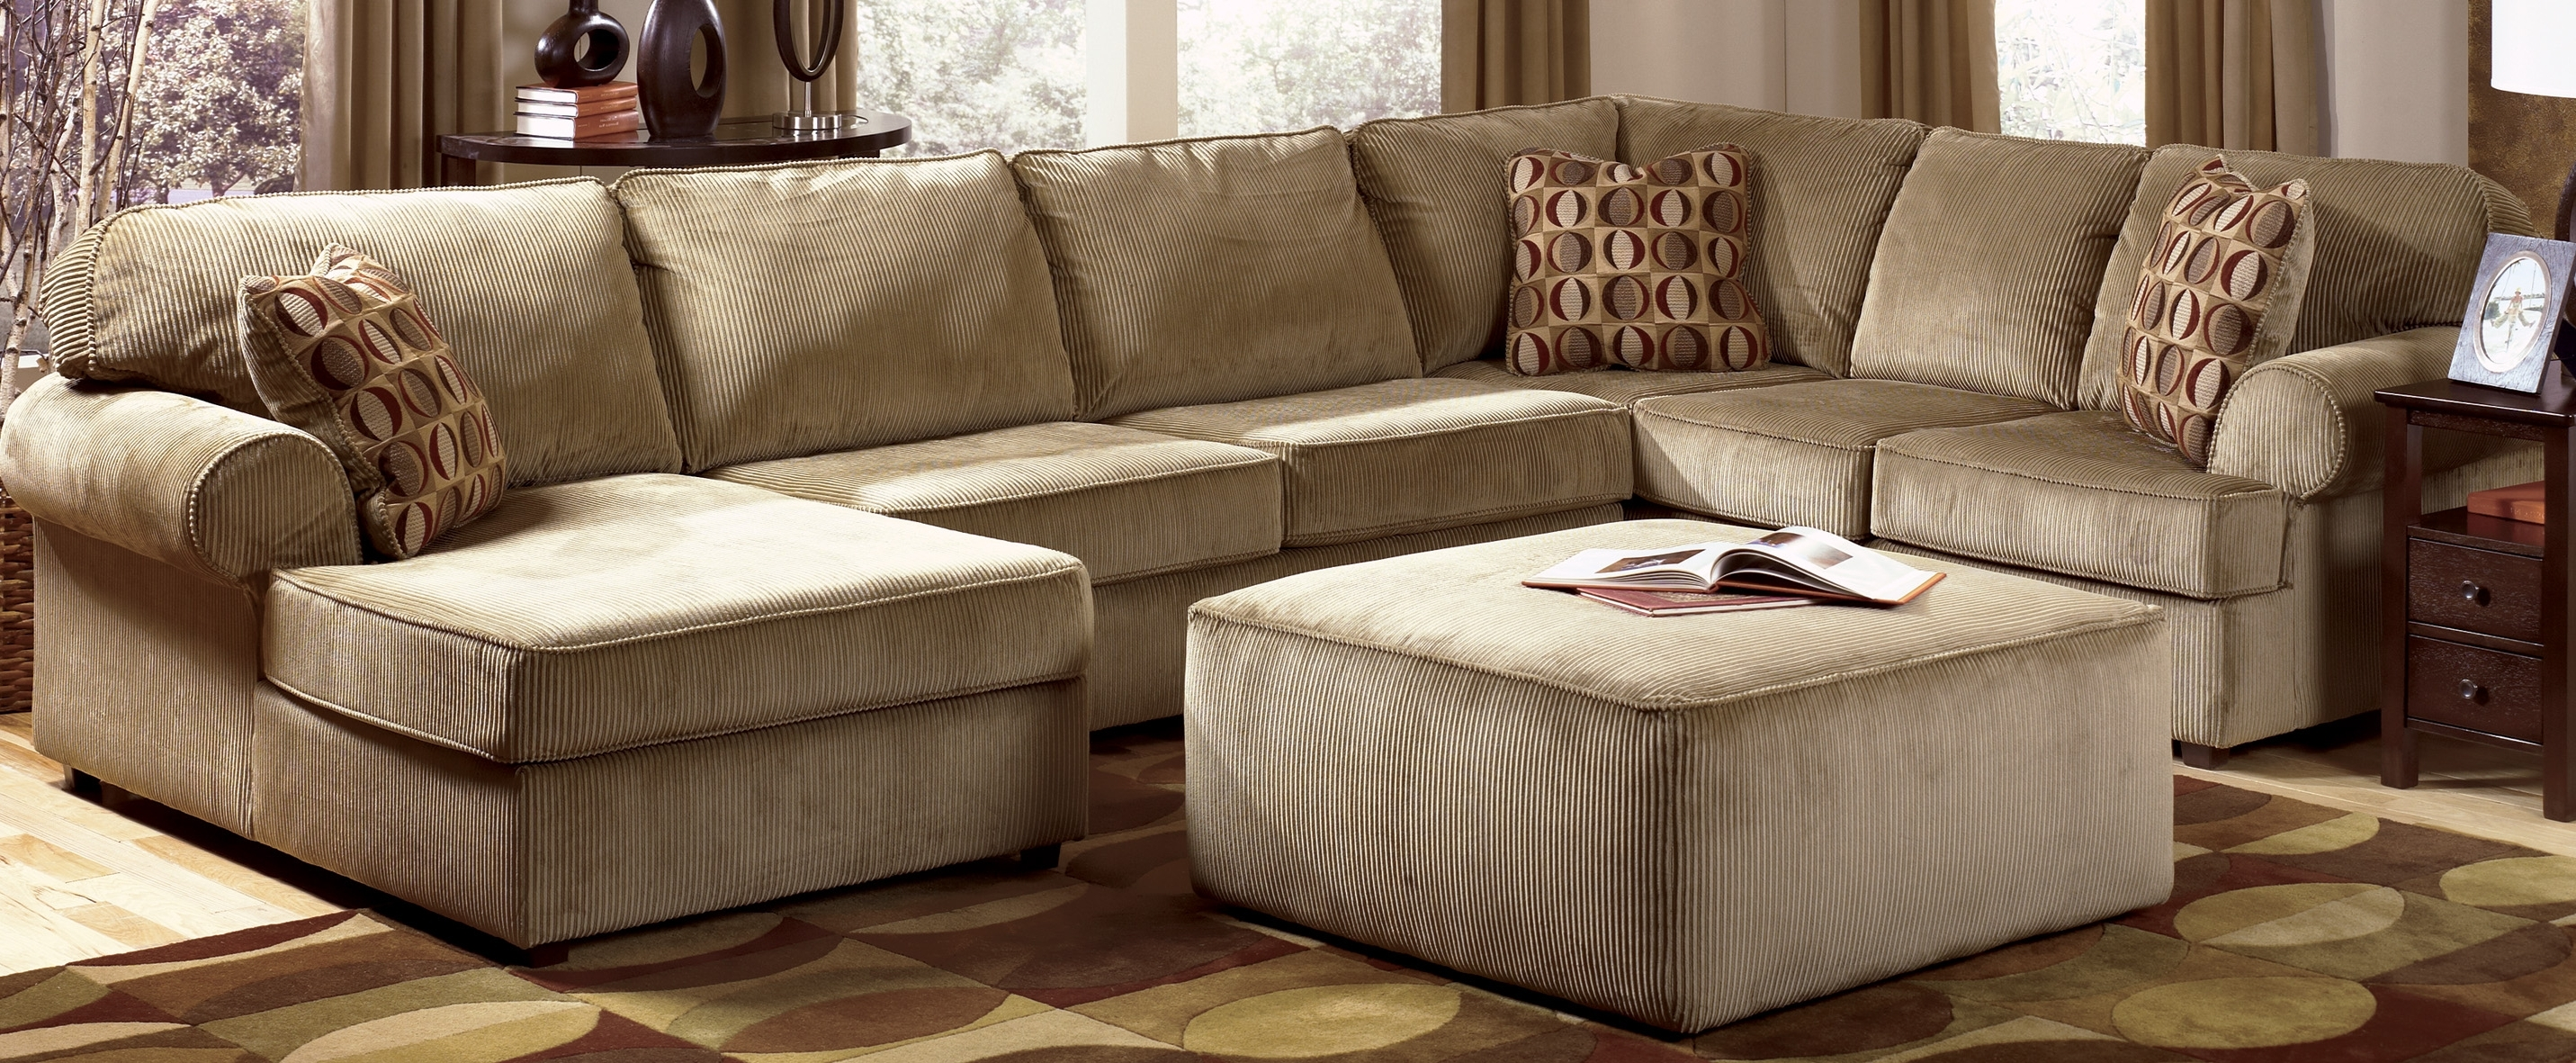 Raleigh Nc Sectional Sofas With Regard To Most Up To Date Sectional Sofa Design: Cheap Sofa Sectionals Brilliant Ideas Cheap (View 15 of 20)